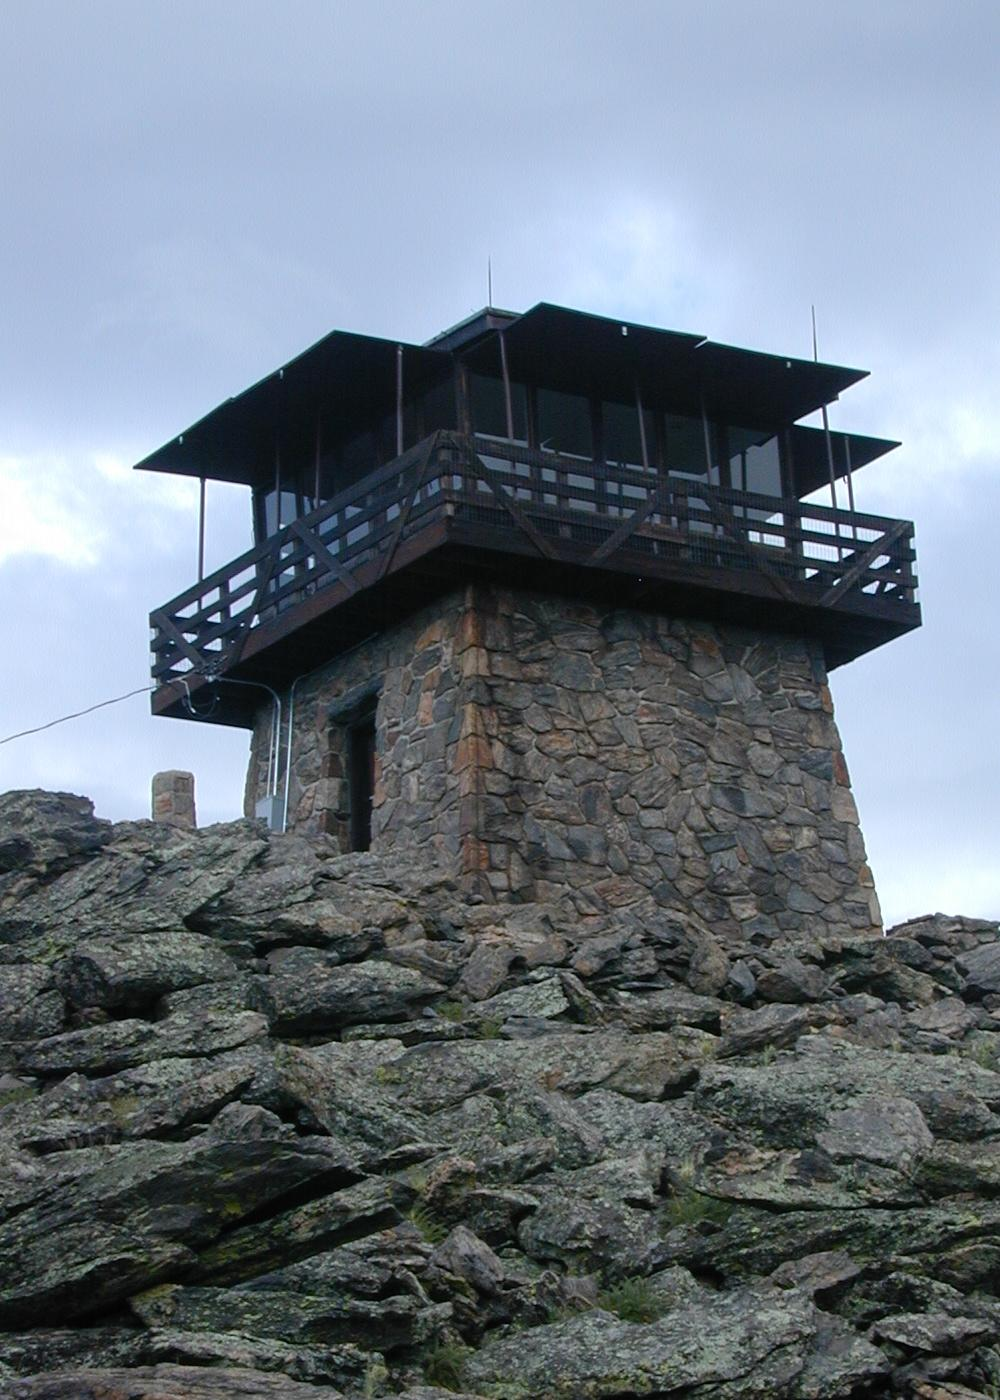 Fire lookout building.